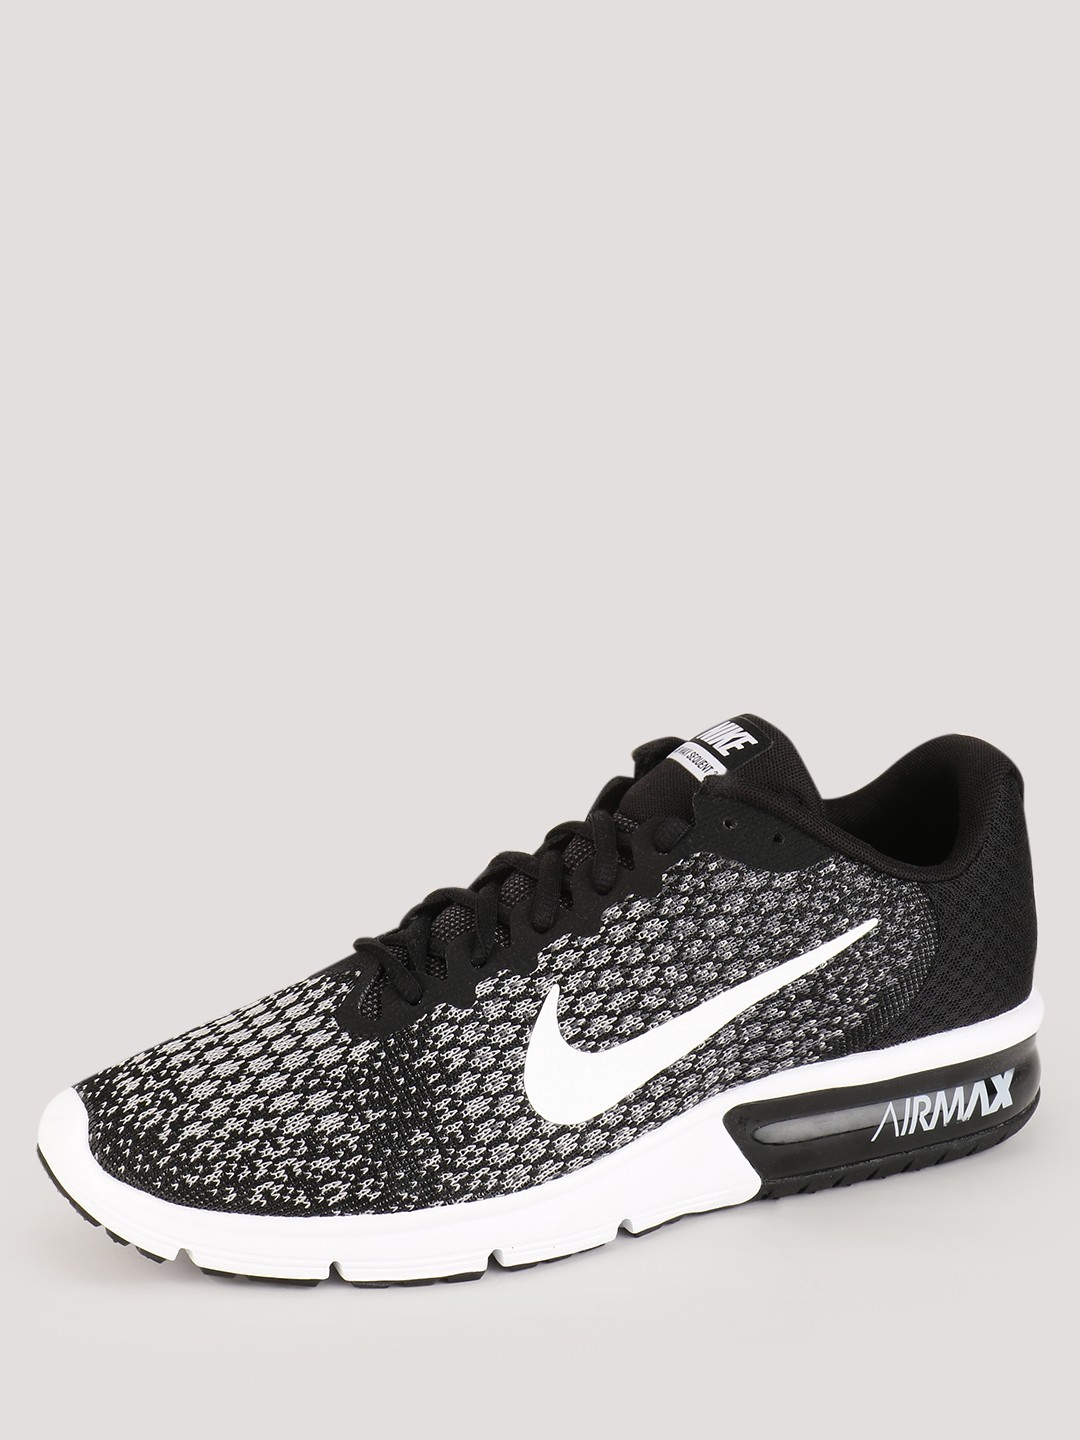 buy nike air max sequent 2 running shoes for men men 39 s multi sports trainers sneakers online. Black Bedroom Furniture Sets. Home Design Ideas